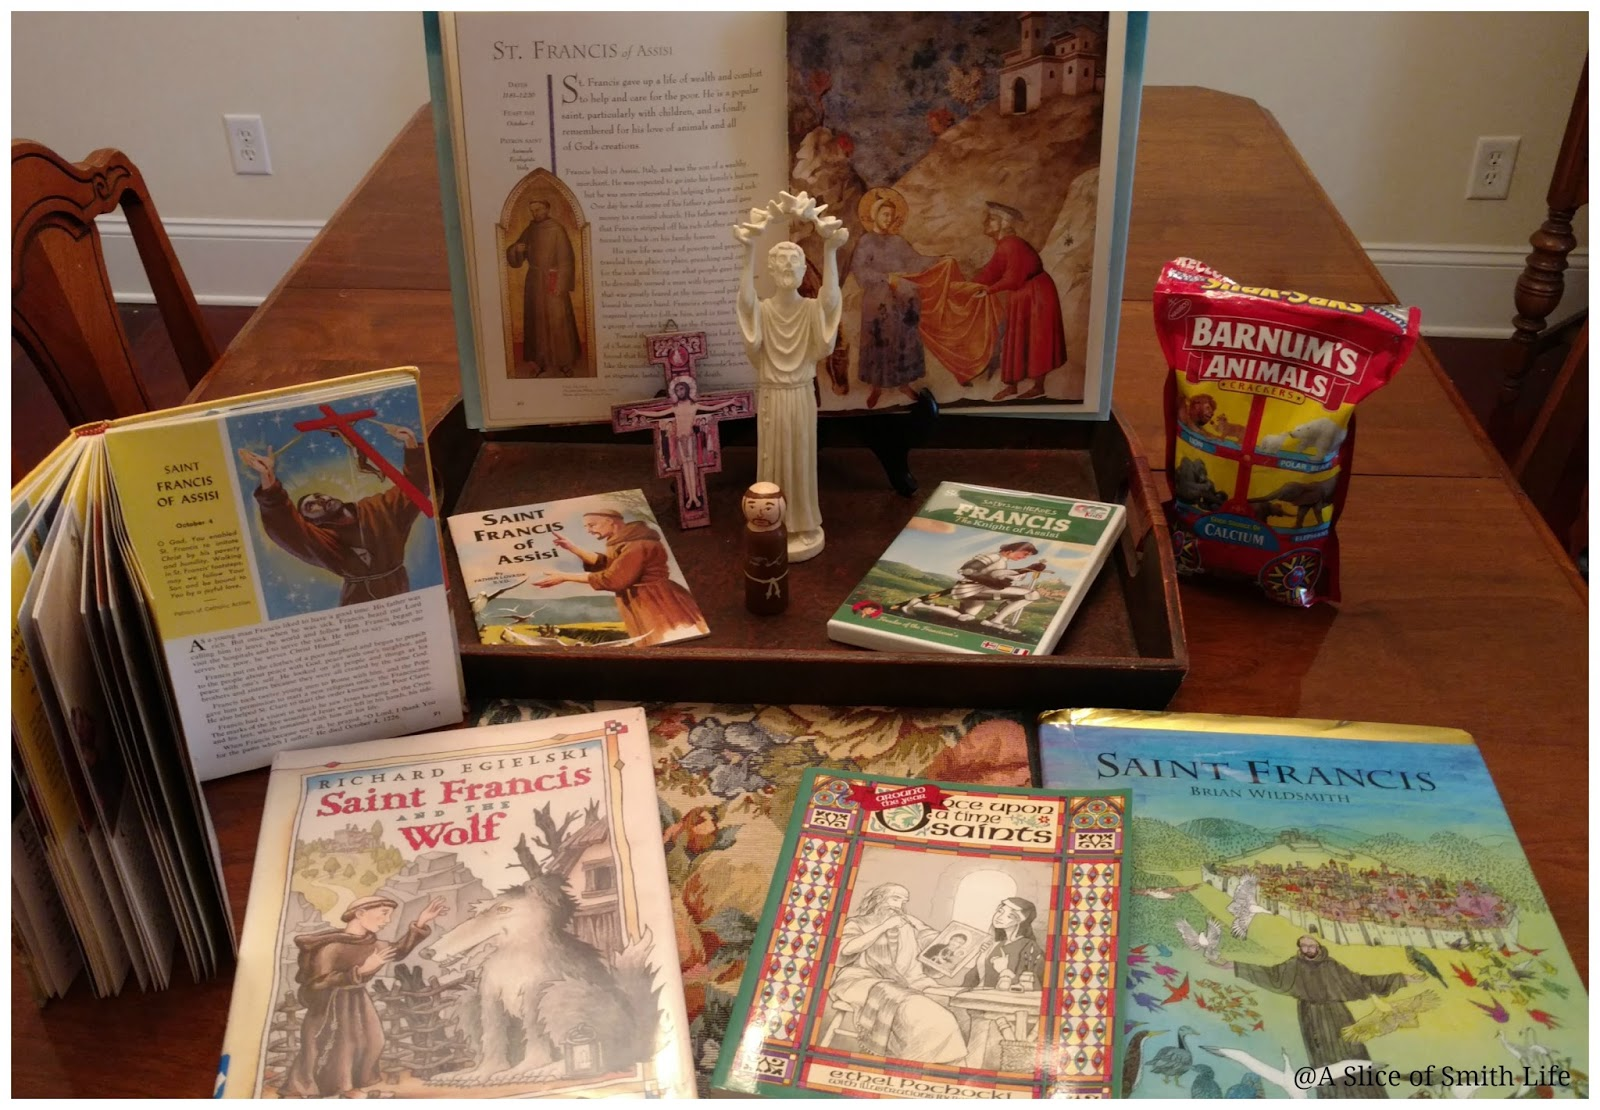 The Books That We Enjoy About Saint Francis I Personally Own Or Borrowed From Library Are Saints And Angels This Is Book Opened In Back